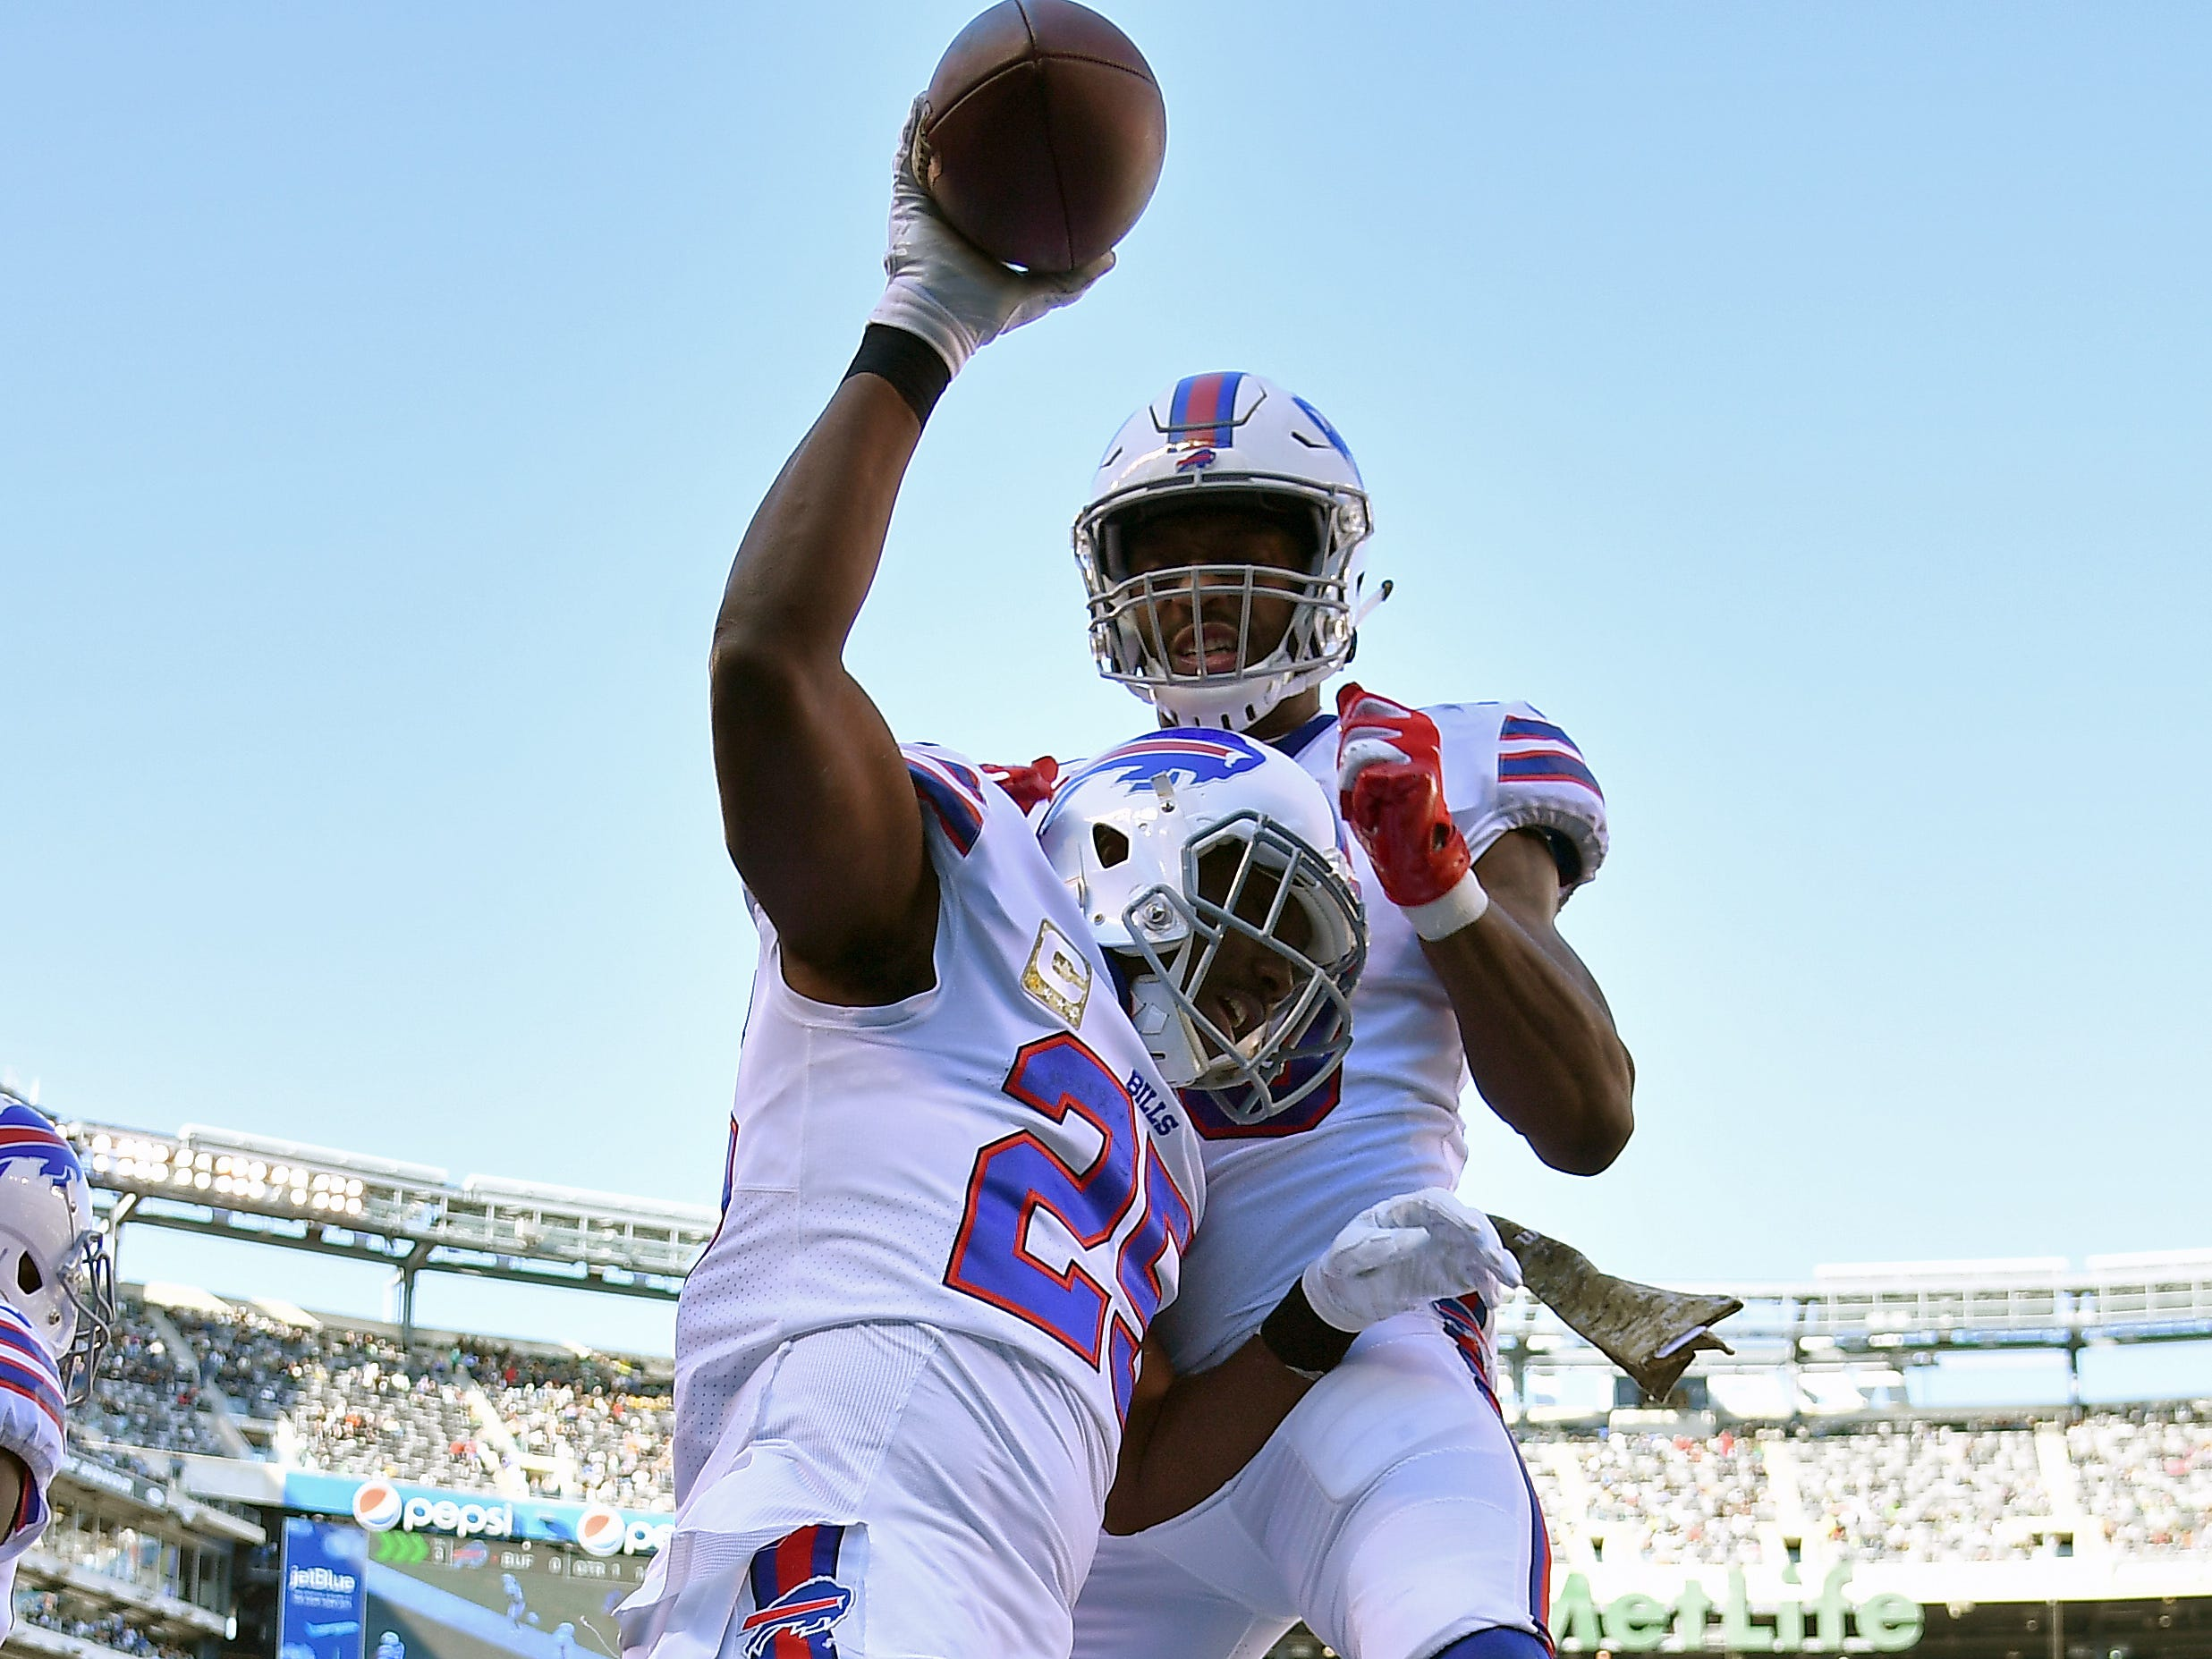 EAST RUTHERFORD, NEW JERSEY - NOVEMBER 11: LeSean McCoy #25 is congratulated by his teammate Jason Croom #80 of the Buffalo Bills after his first quarter rushing touchdown  against the New York Jets at MetLife Stadium on November 11, 2018 in East Rutherford, New Jersey. (Photo by Mark Brown/Getty Images)